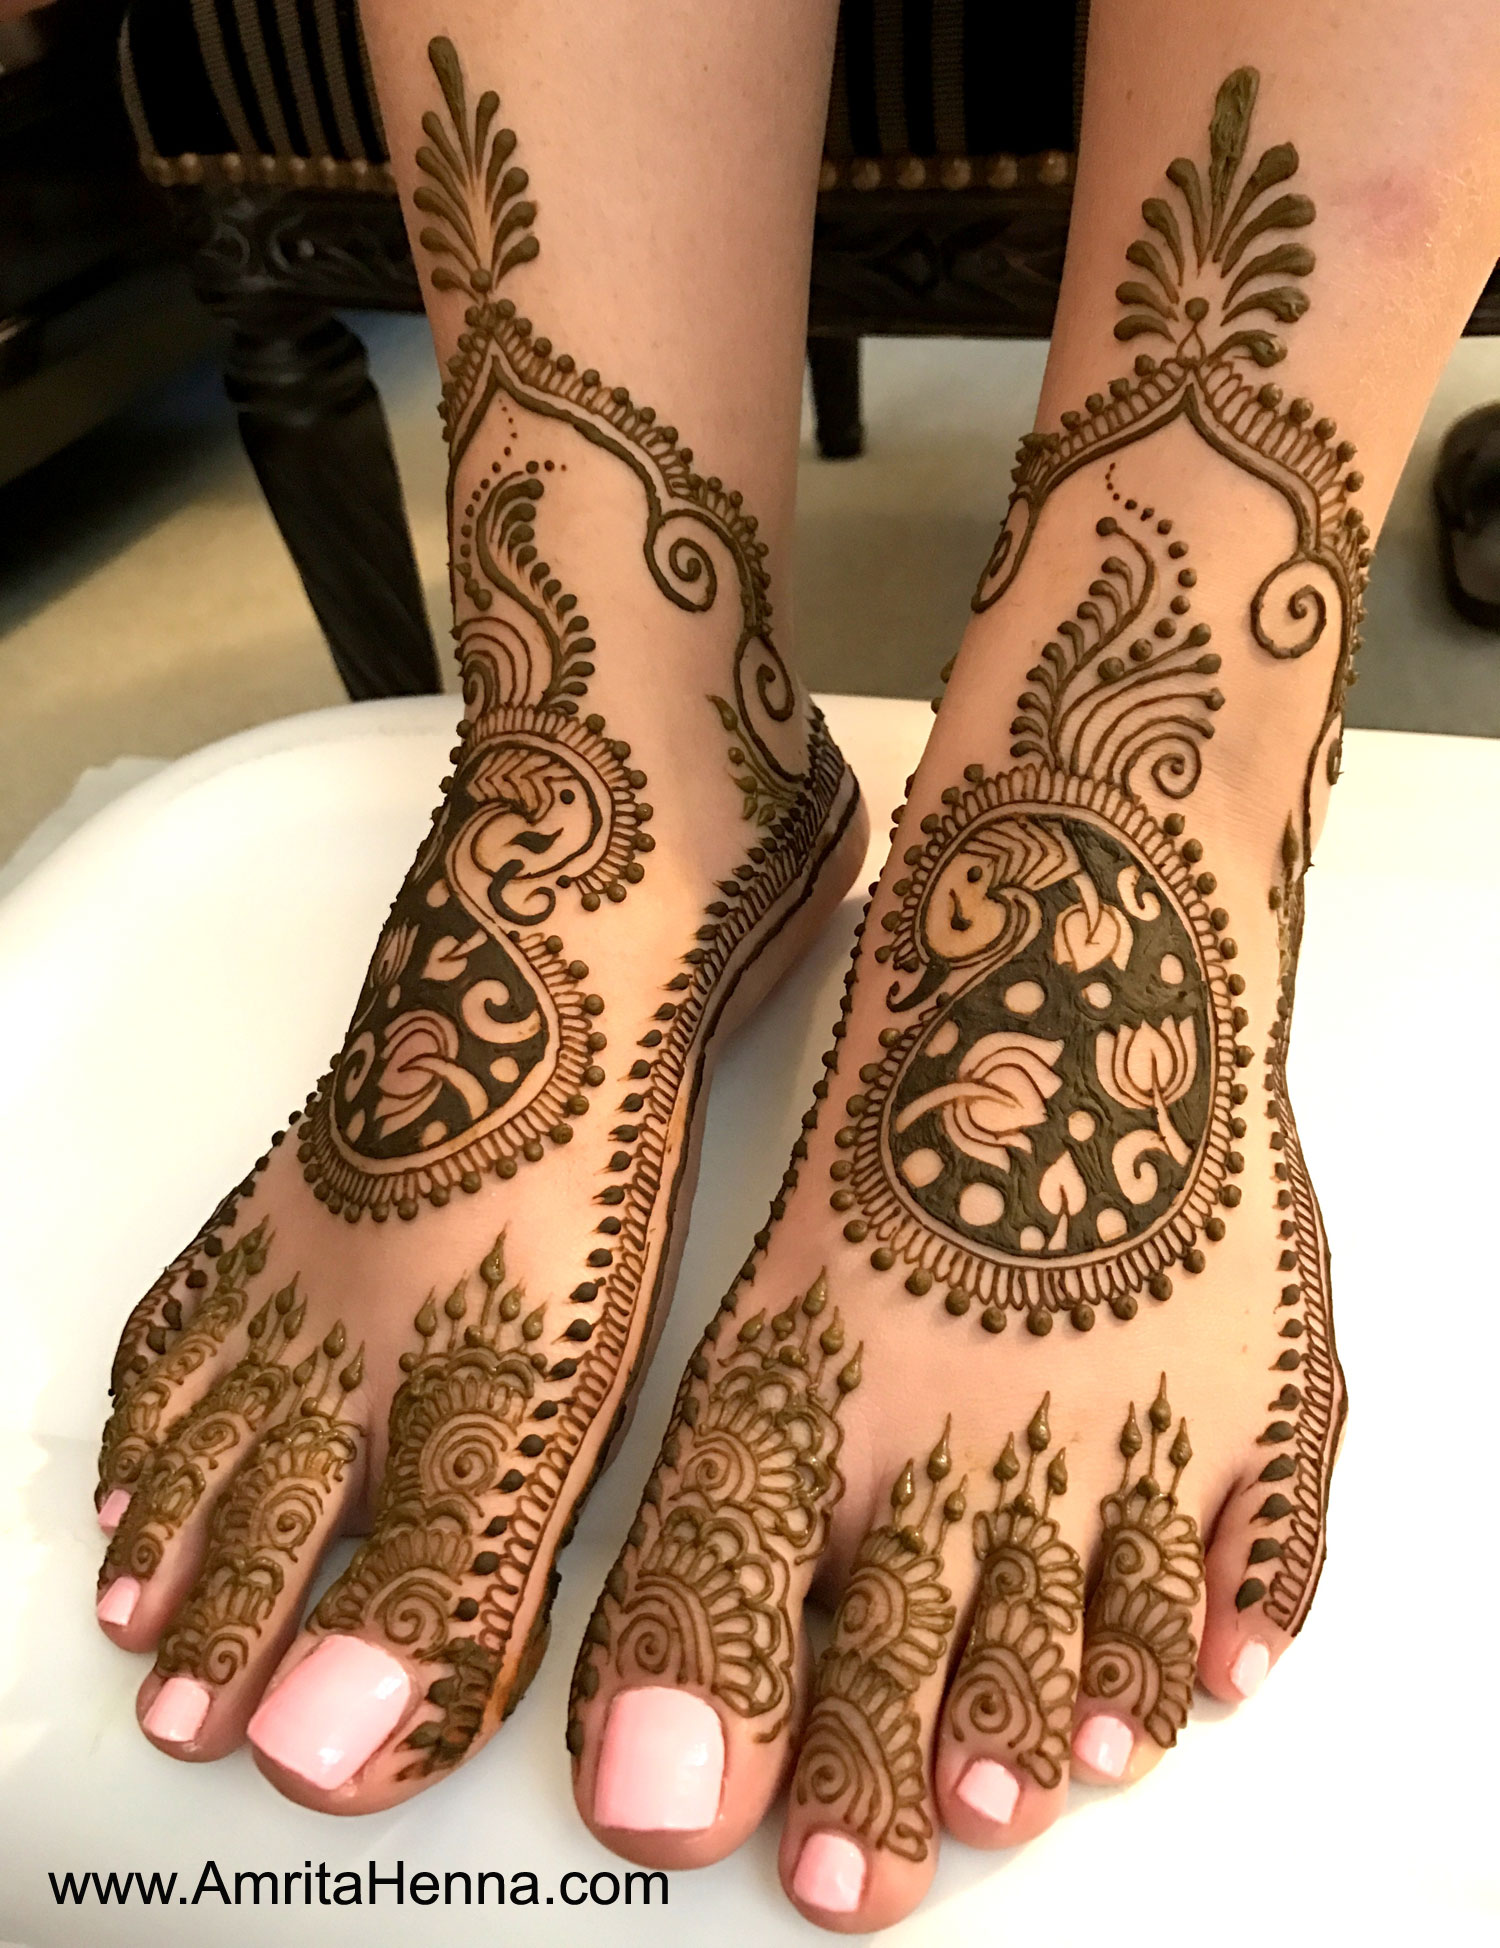 Bridal Mehndi Feet Design : Top latest bridal feet henna designs tattoo